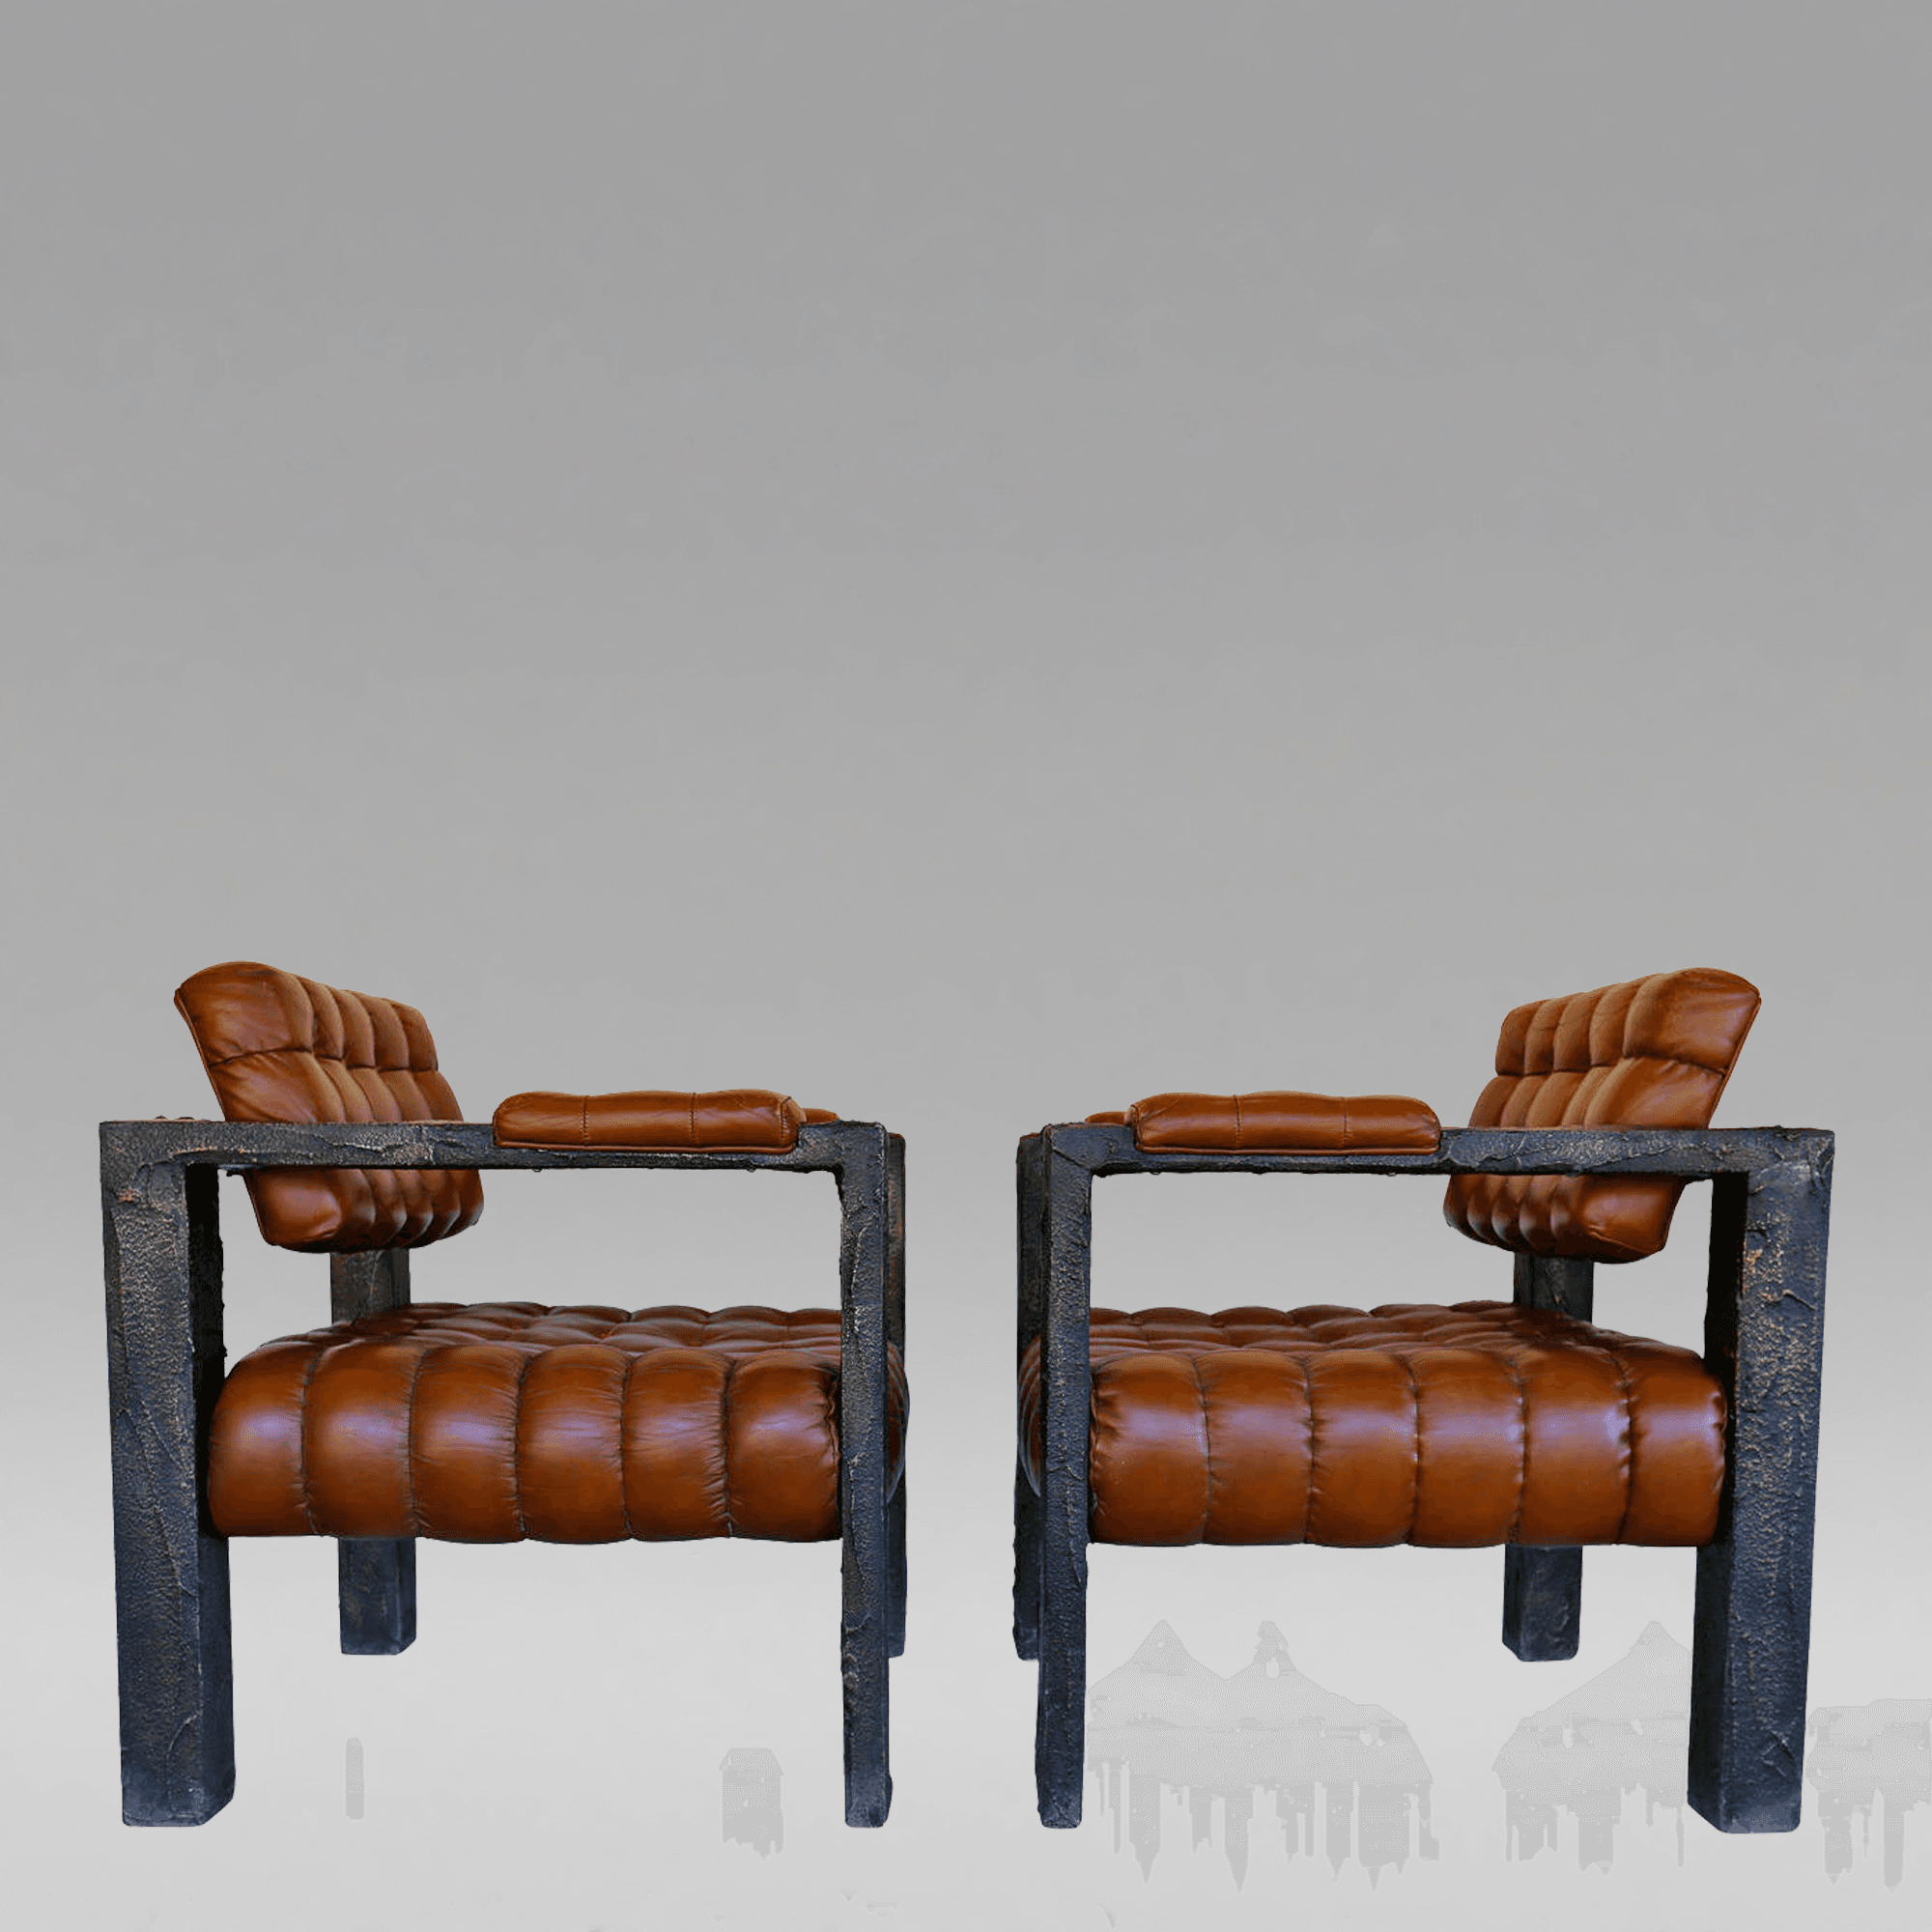 High Quality Paul Evans, Custom Sculpted Lounge Chairs, Signed PE 71. Archive.